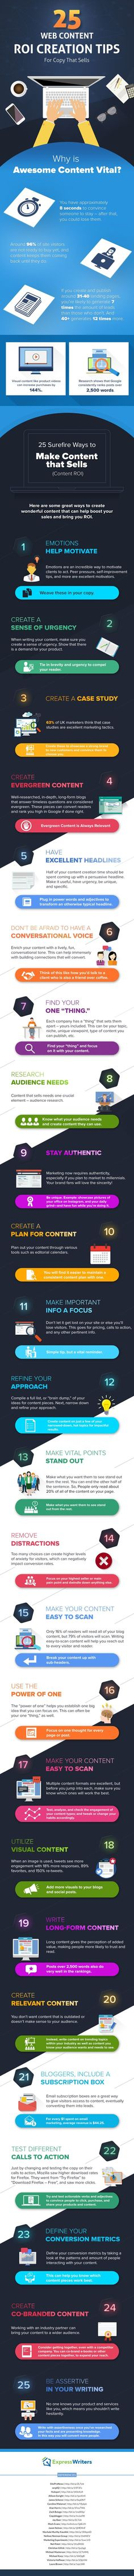 25 Surefire Ways to Create Web Content that Sells (Content Marketing ROI) - #Infographic (scheduled via http://www.tailwindapp.com?utm_source=pinterest&utm_medium=twpin&utm_content=post57877424&utm_campaign=scheduler_attribution)